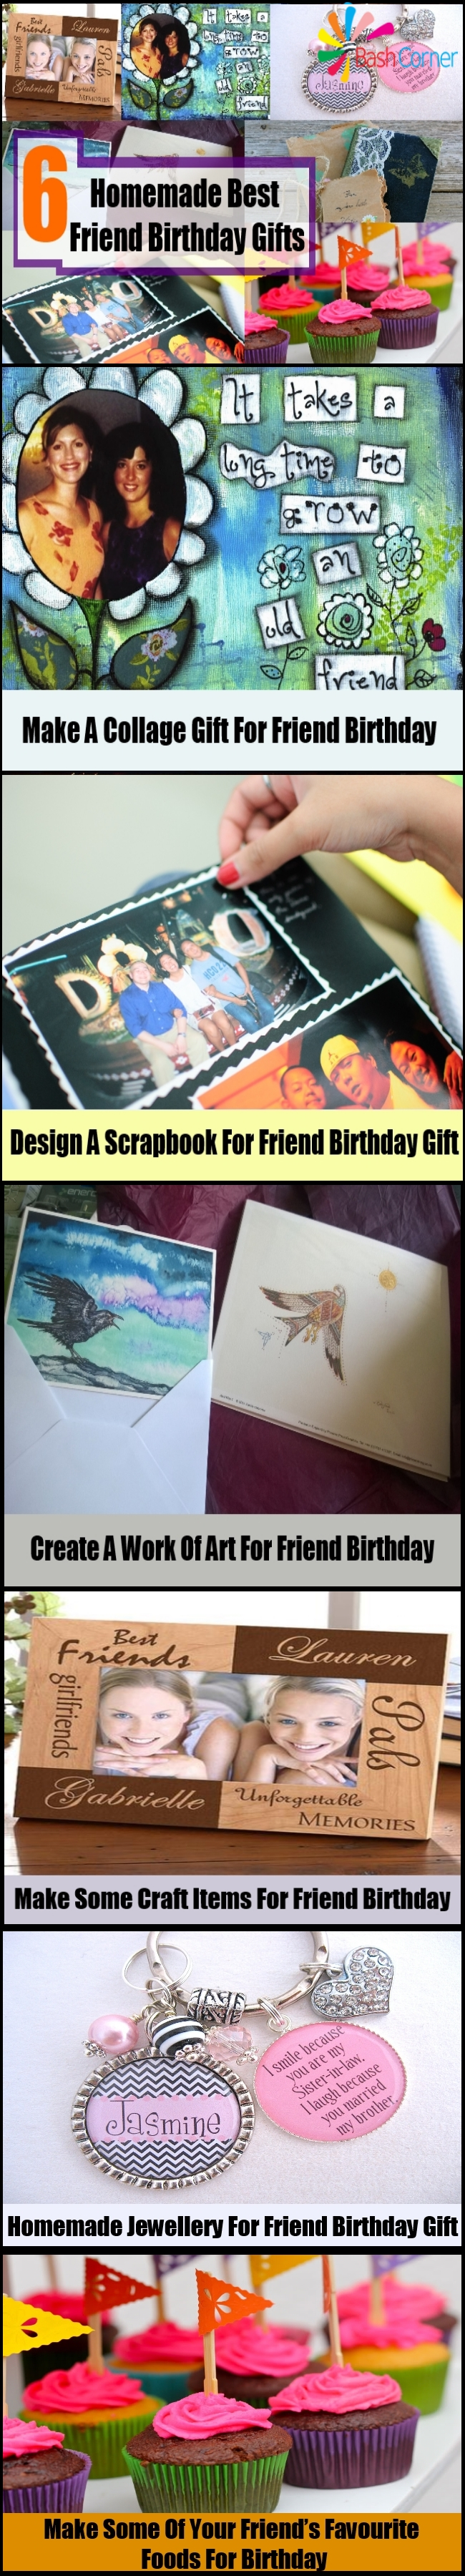 Friend Birthday Gifts